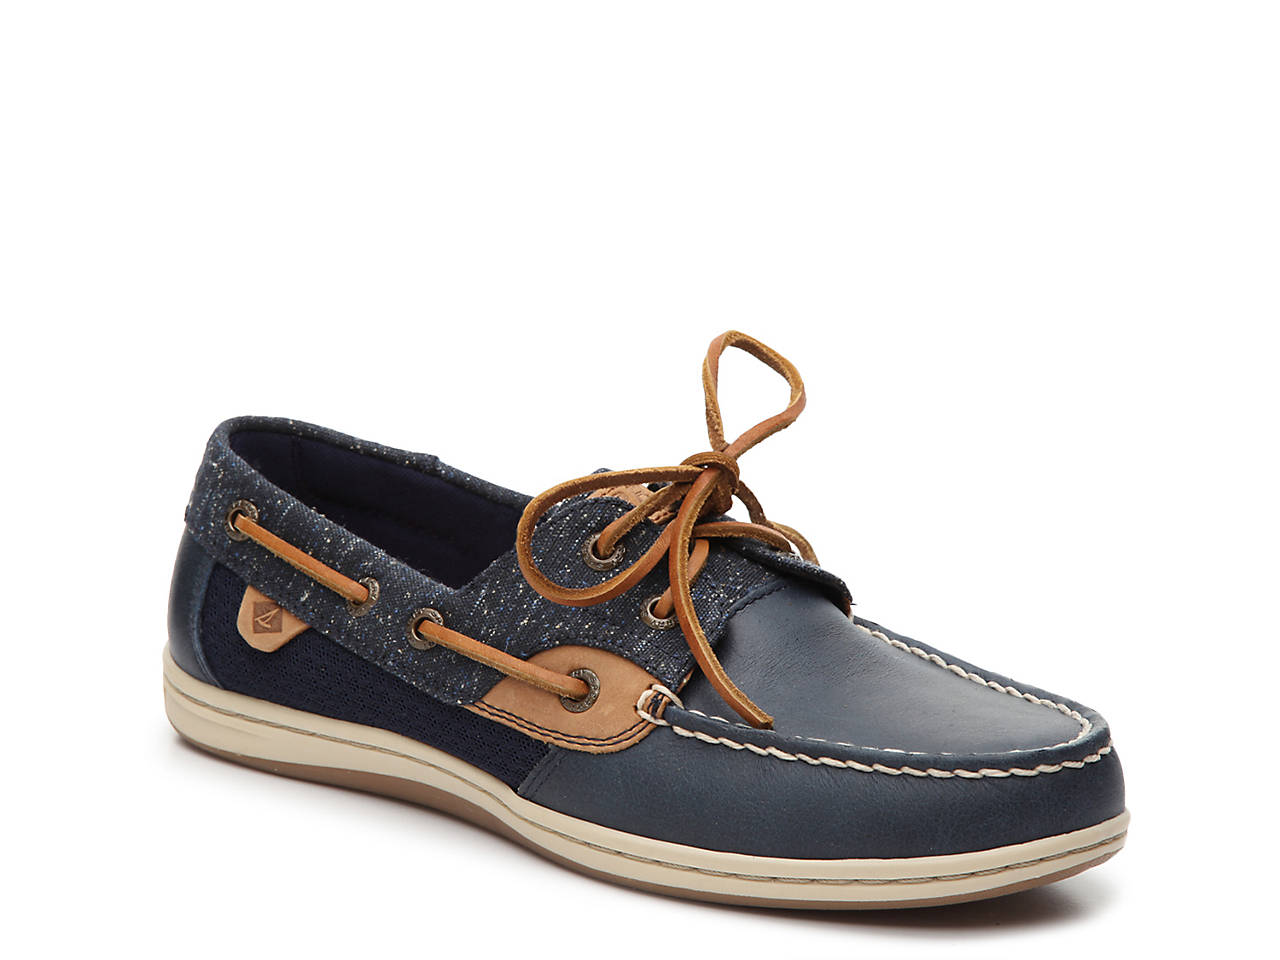 0b3a9449f0 Sperry Top-Sider Koifish Boat Shoe Women s Shoes